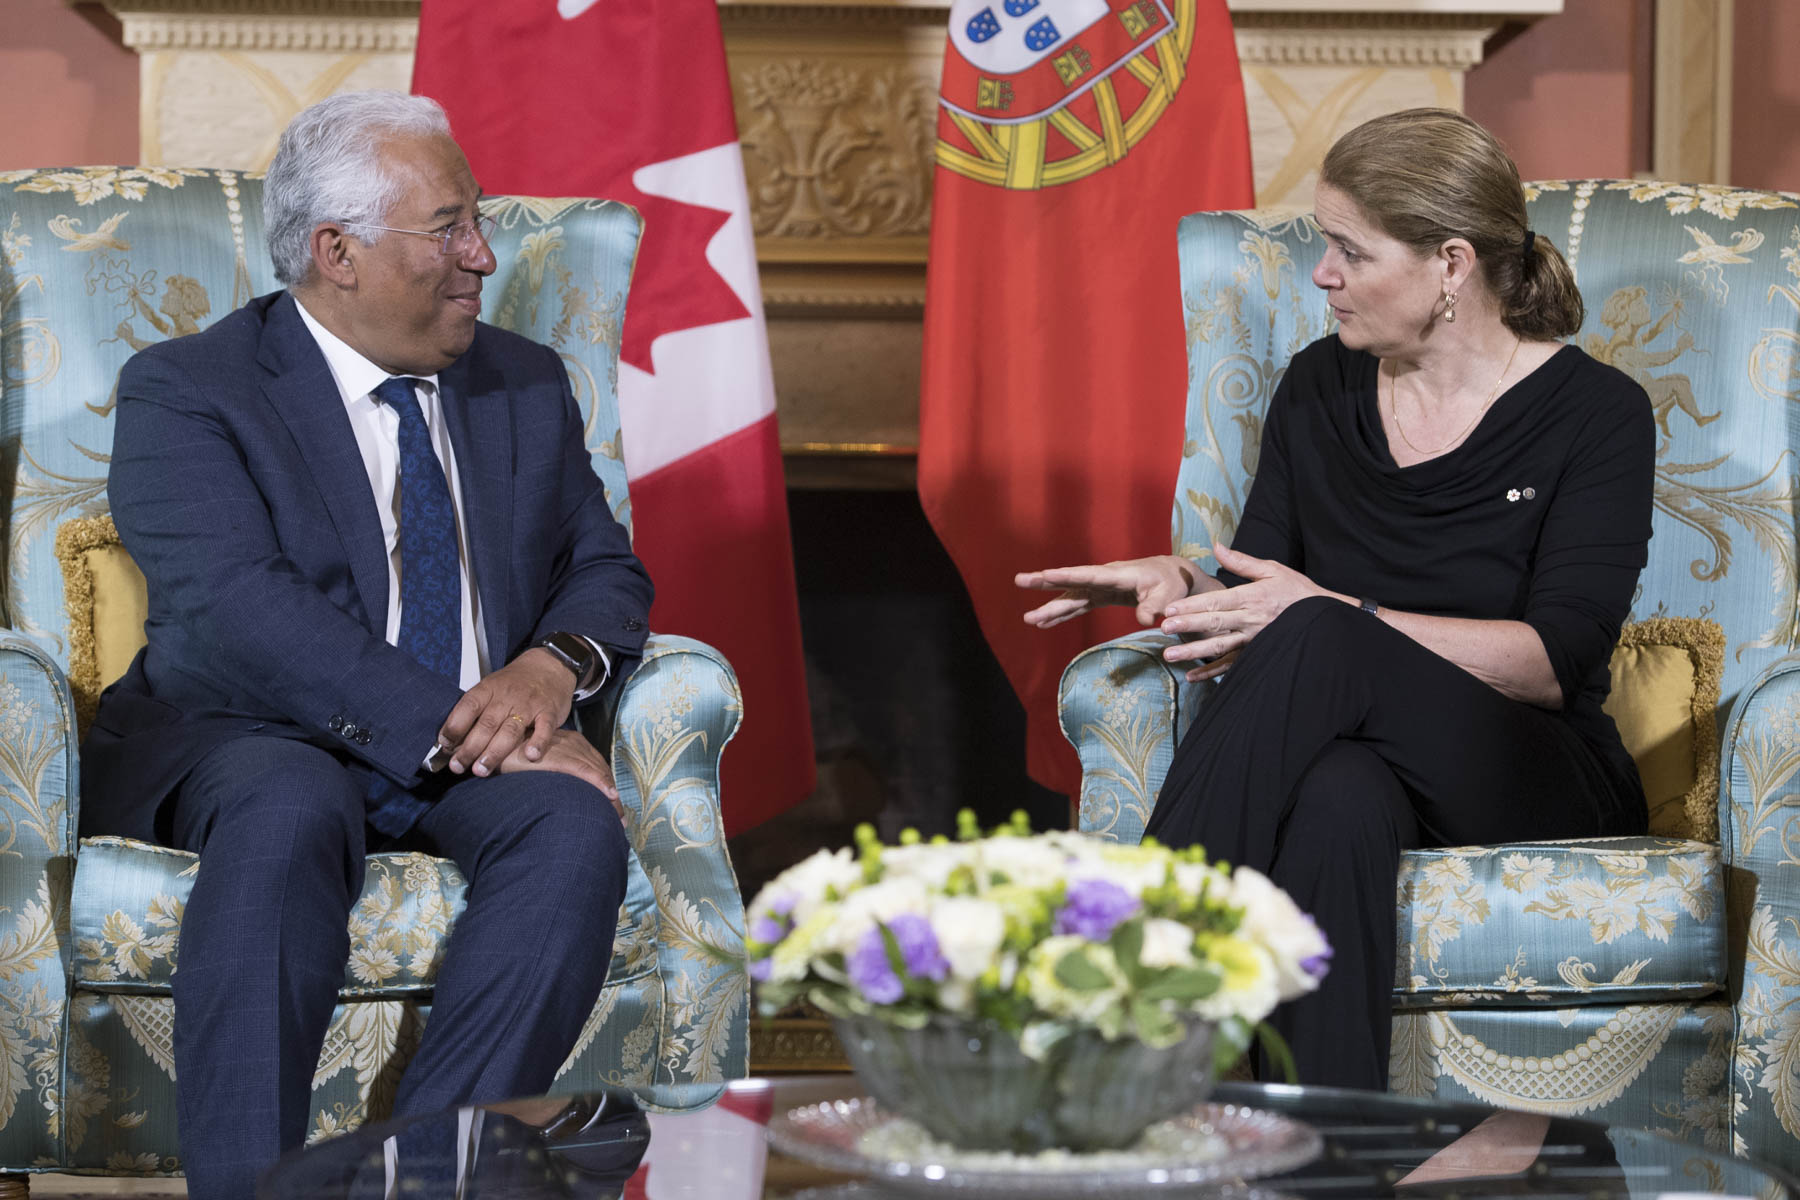 Canada is home to over 480,000 Canadians of Portuguese origin. The meeting between the Governor General and the Prime Minister of Portugal was held in French.